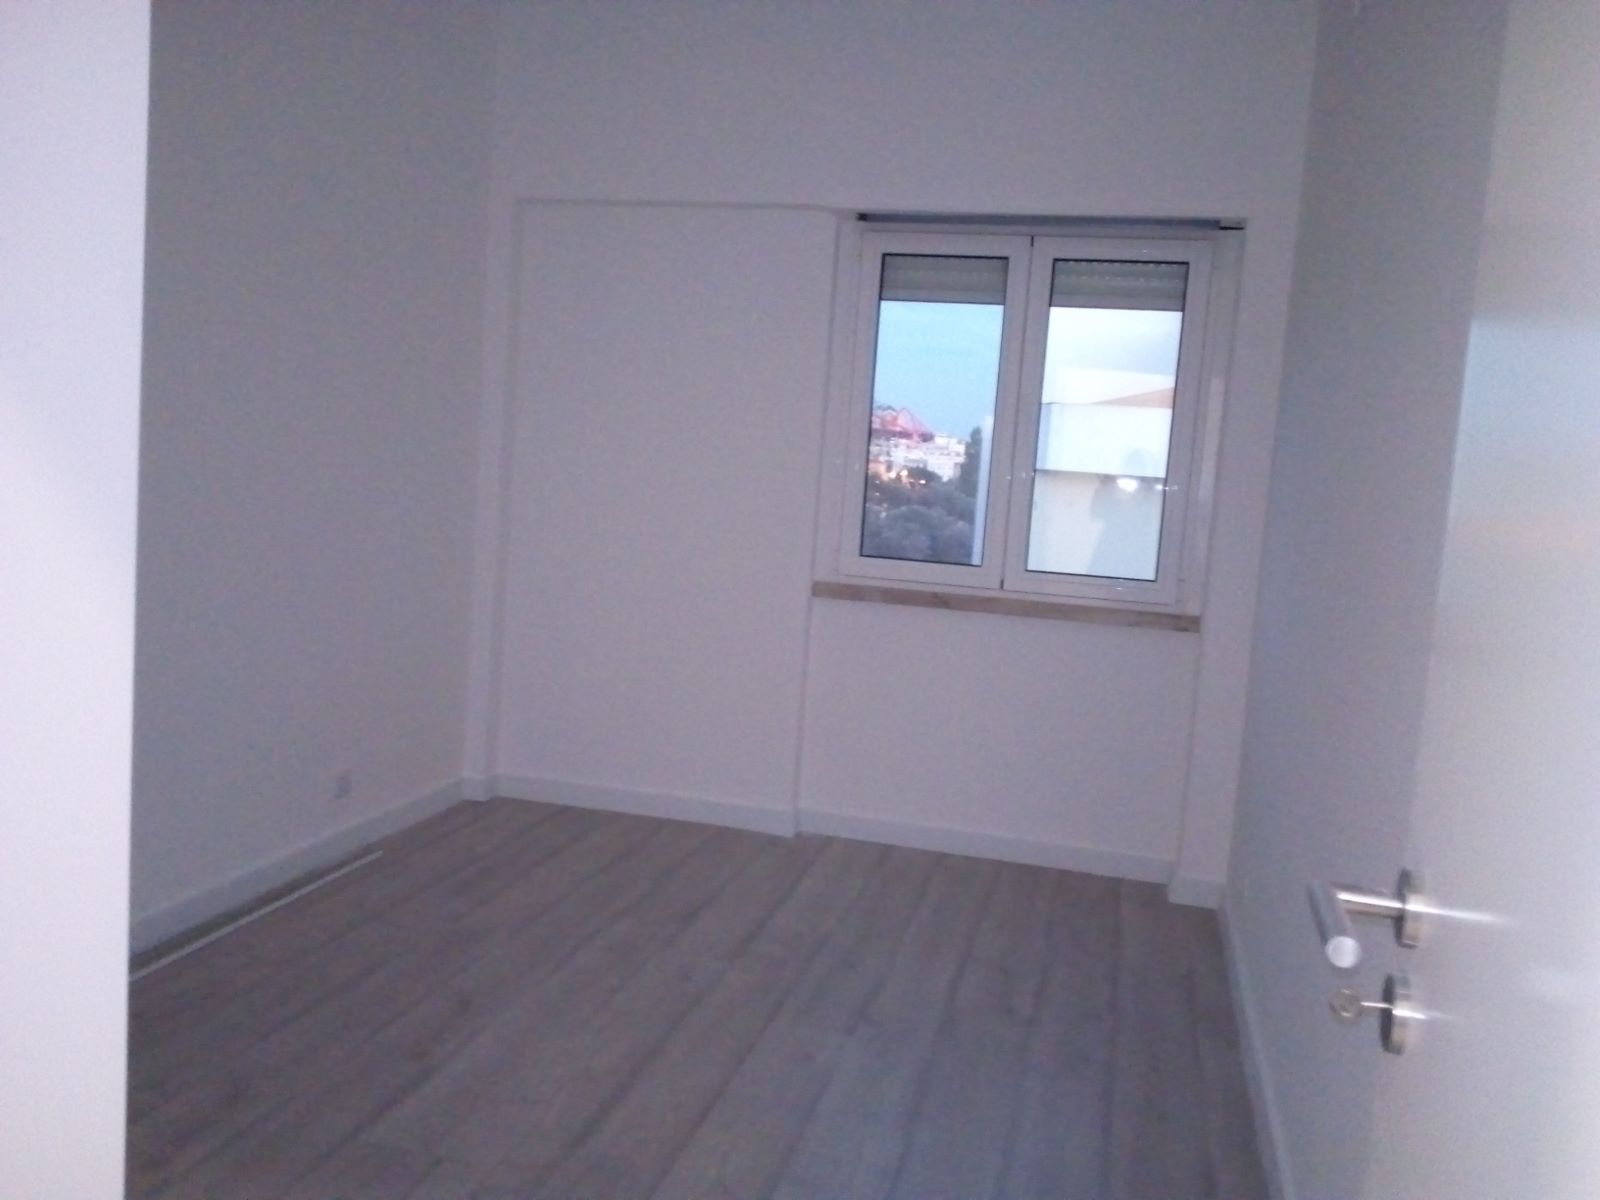 2 BEDROOM APARTMENT TO RENOVATE IN ENTRECAMPOS, LISBON